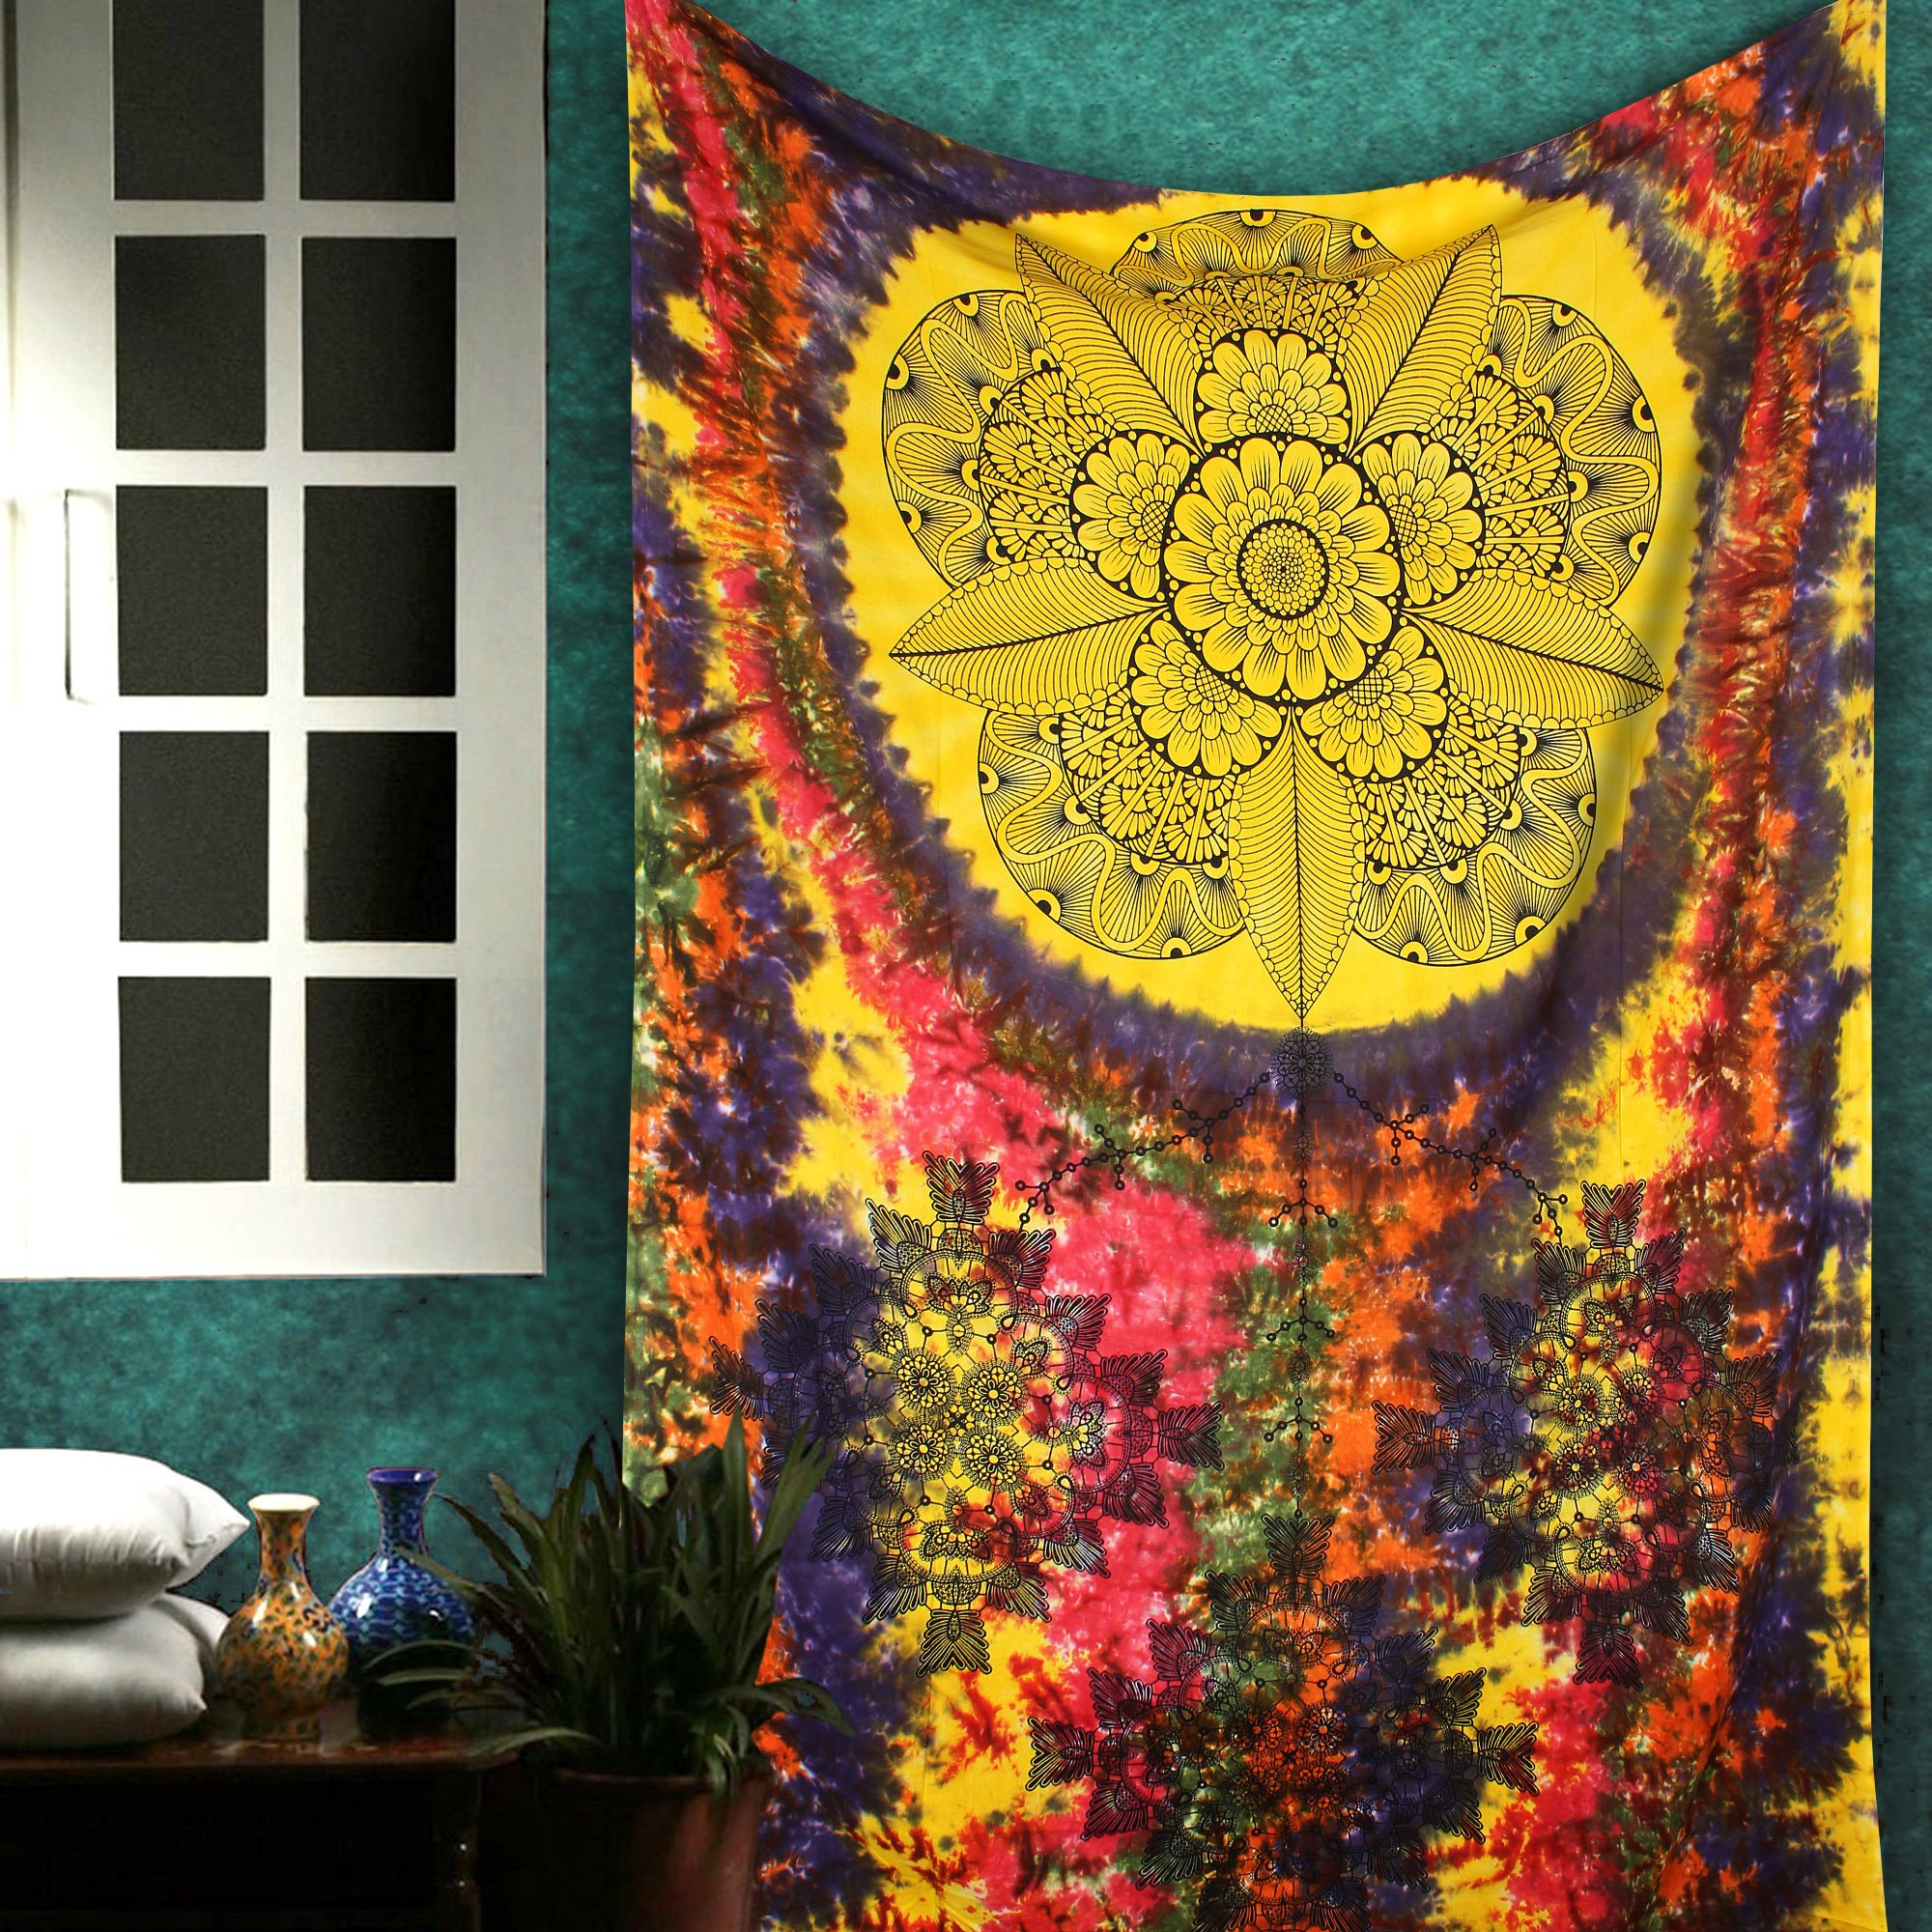 The Indian Craft Mandala Tapestry, Dream Catcher Wall Hanging, Multicolor Tie Dye Hippie Boho Bohemian Beach Throw Tapestries, Table Cloth Cover By